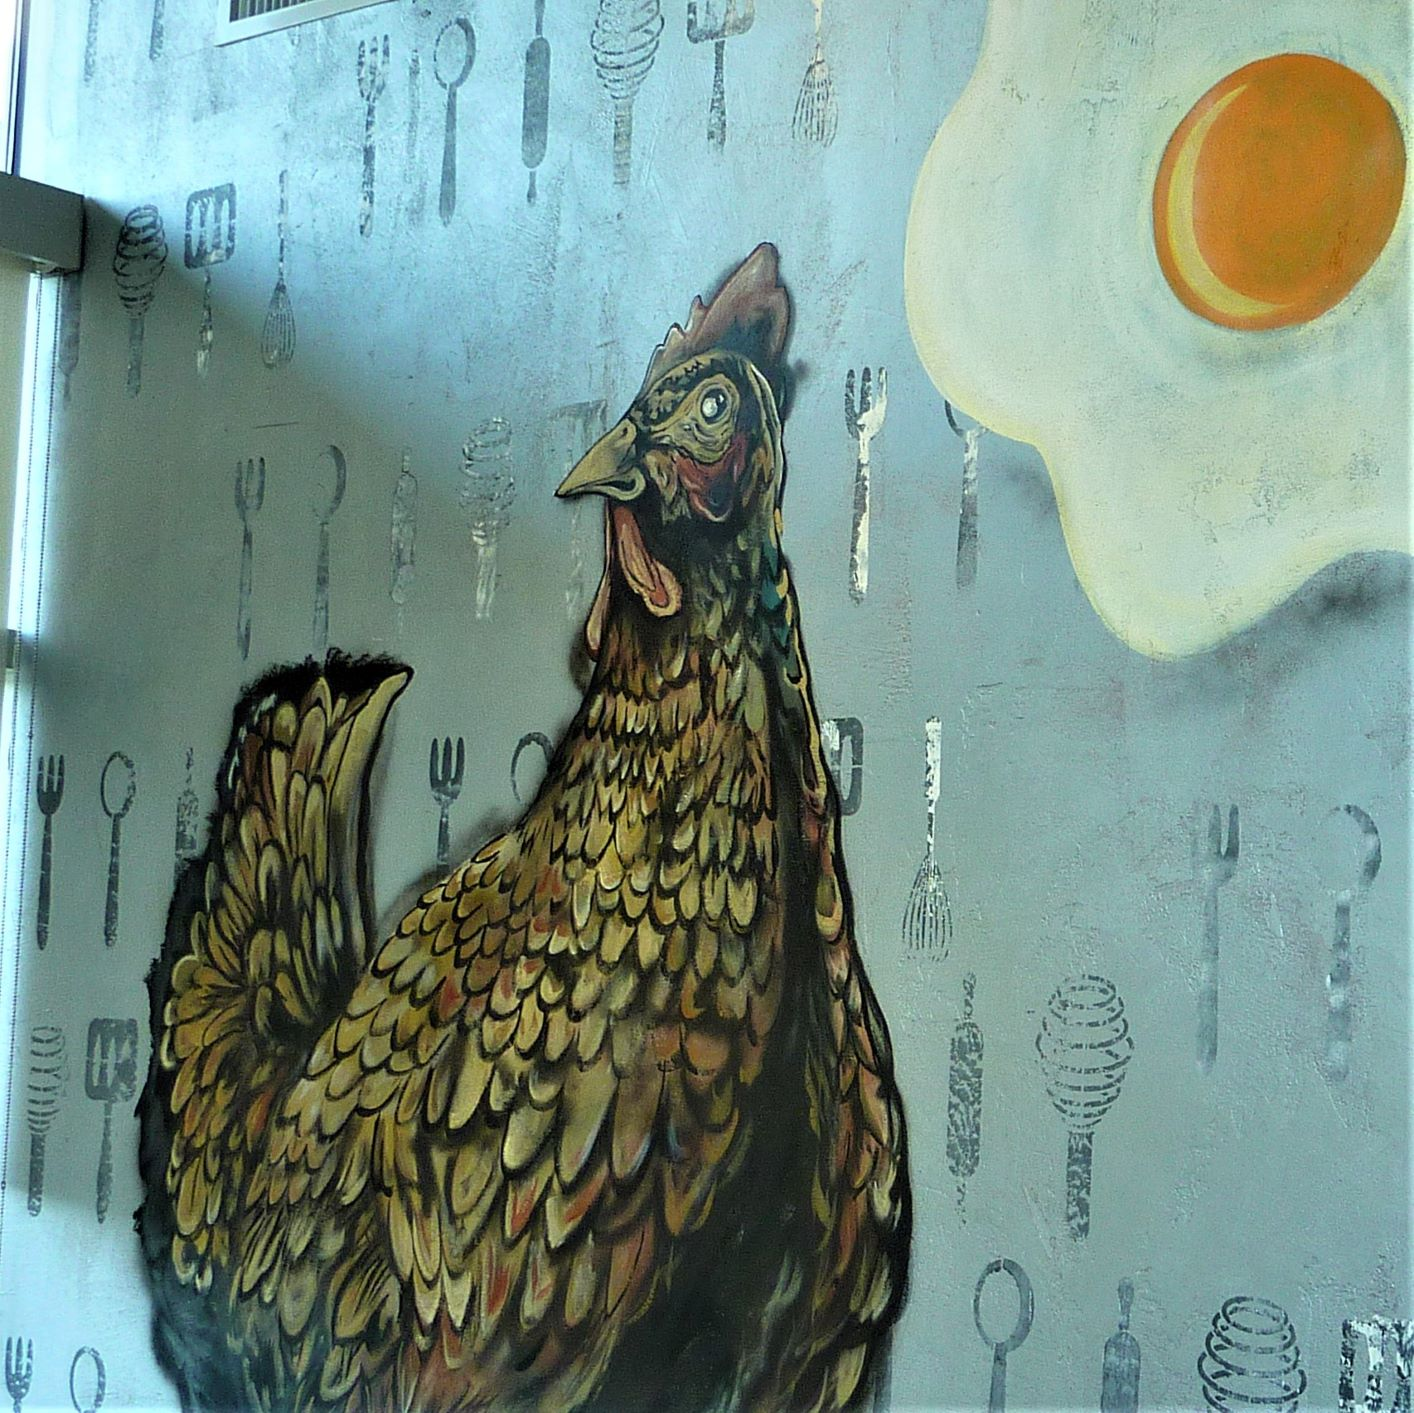 Chicken and egg art at CRACK'D Kitchen & Coffee in Andover, Mass.